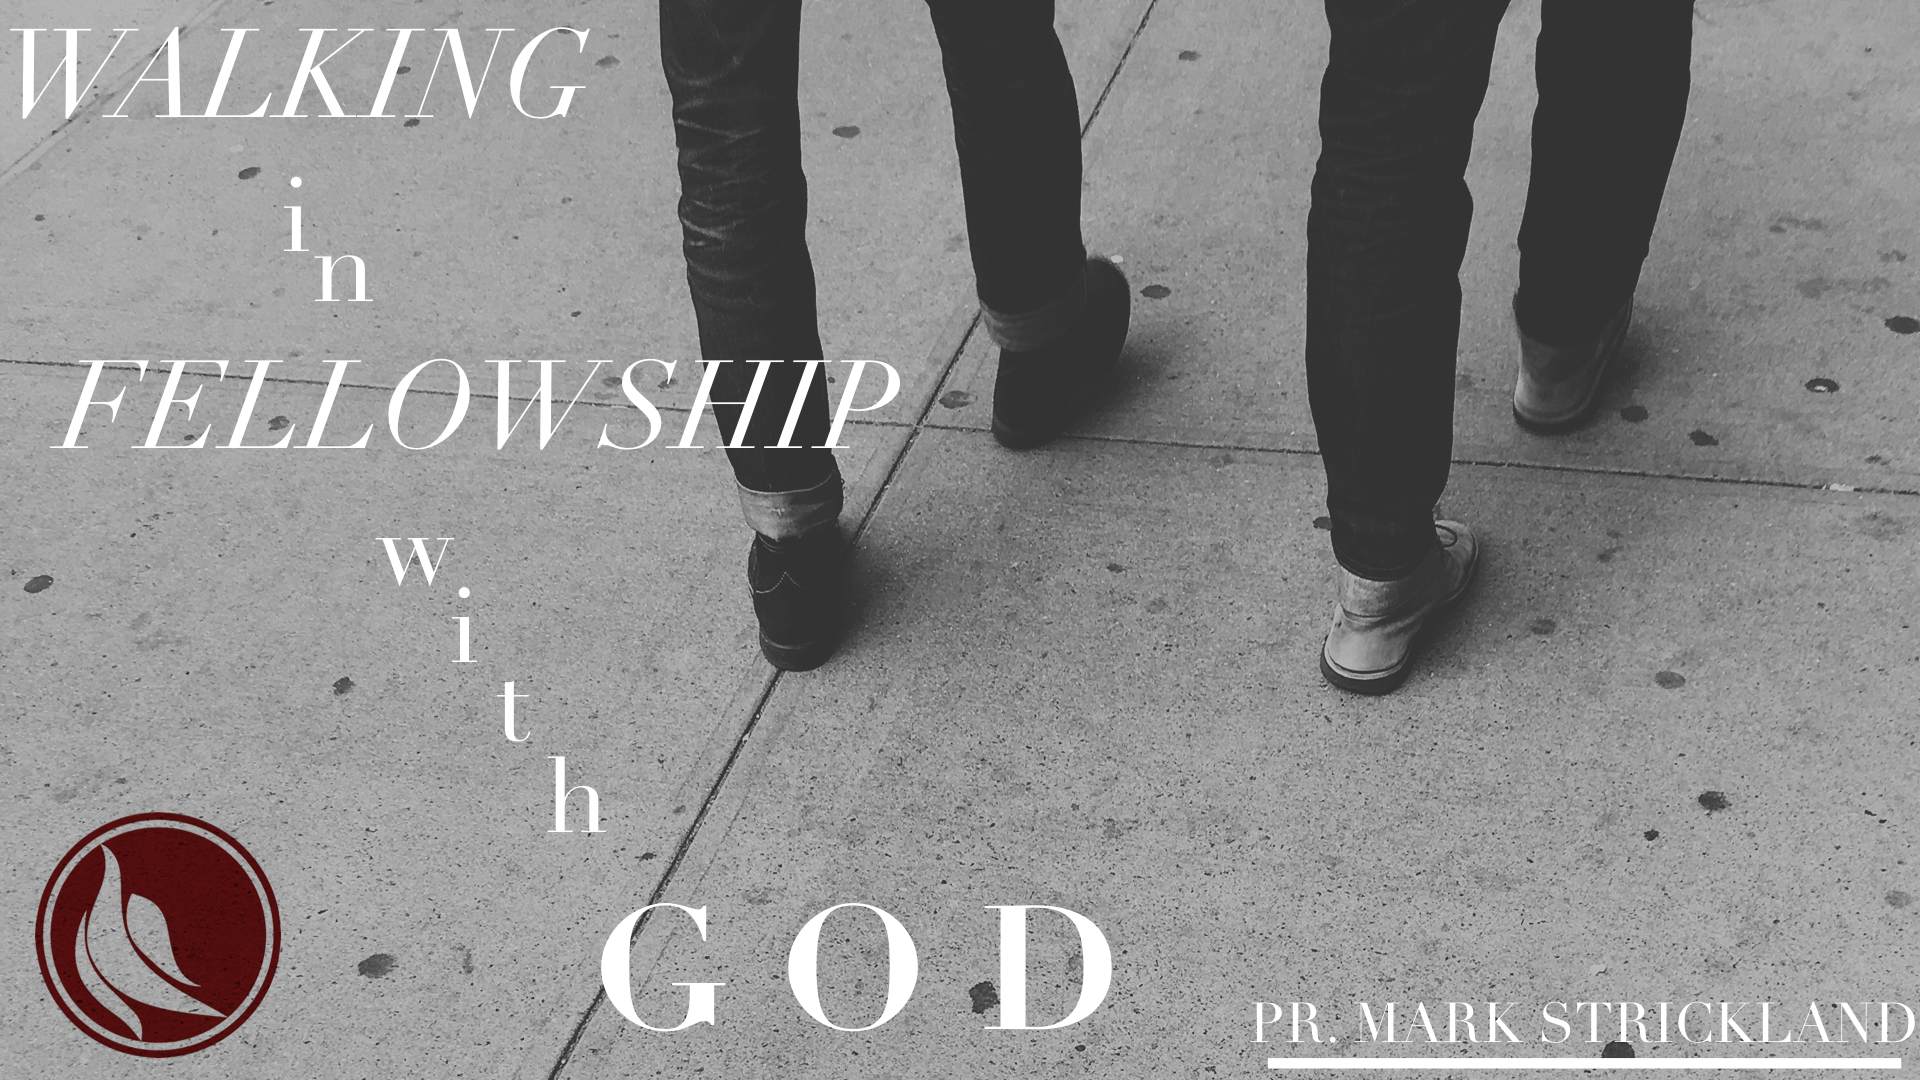 WalkingInFellowshipWithGod